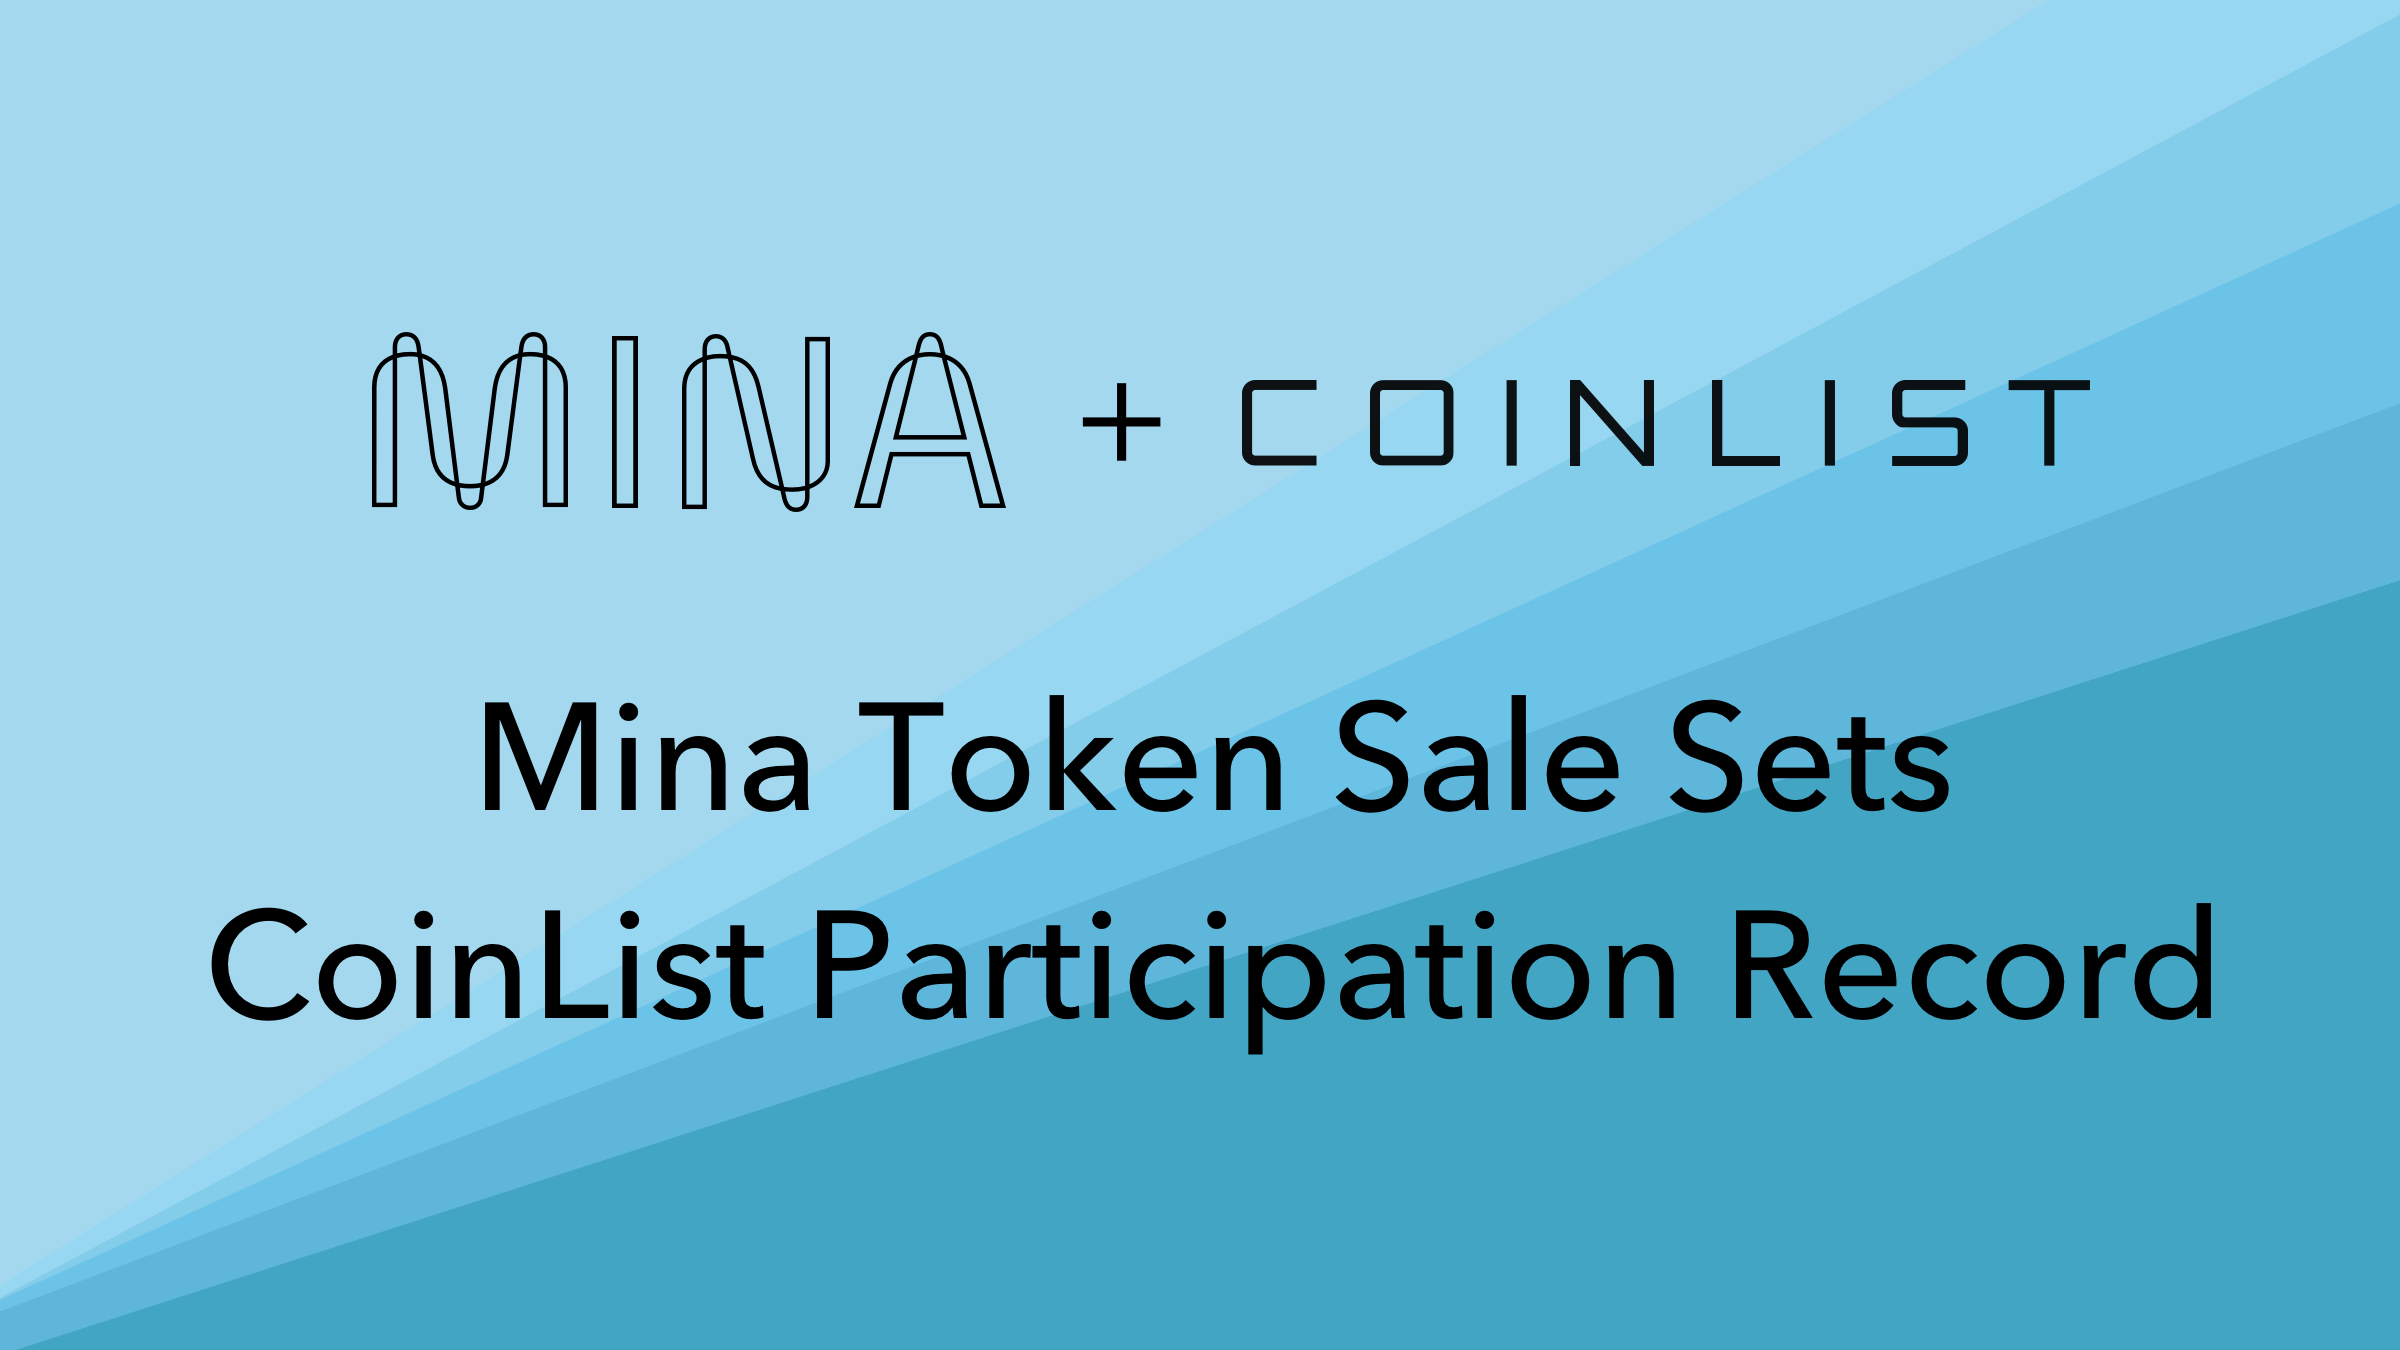 Mina Token Sale Sets Participation Record on CoinList